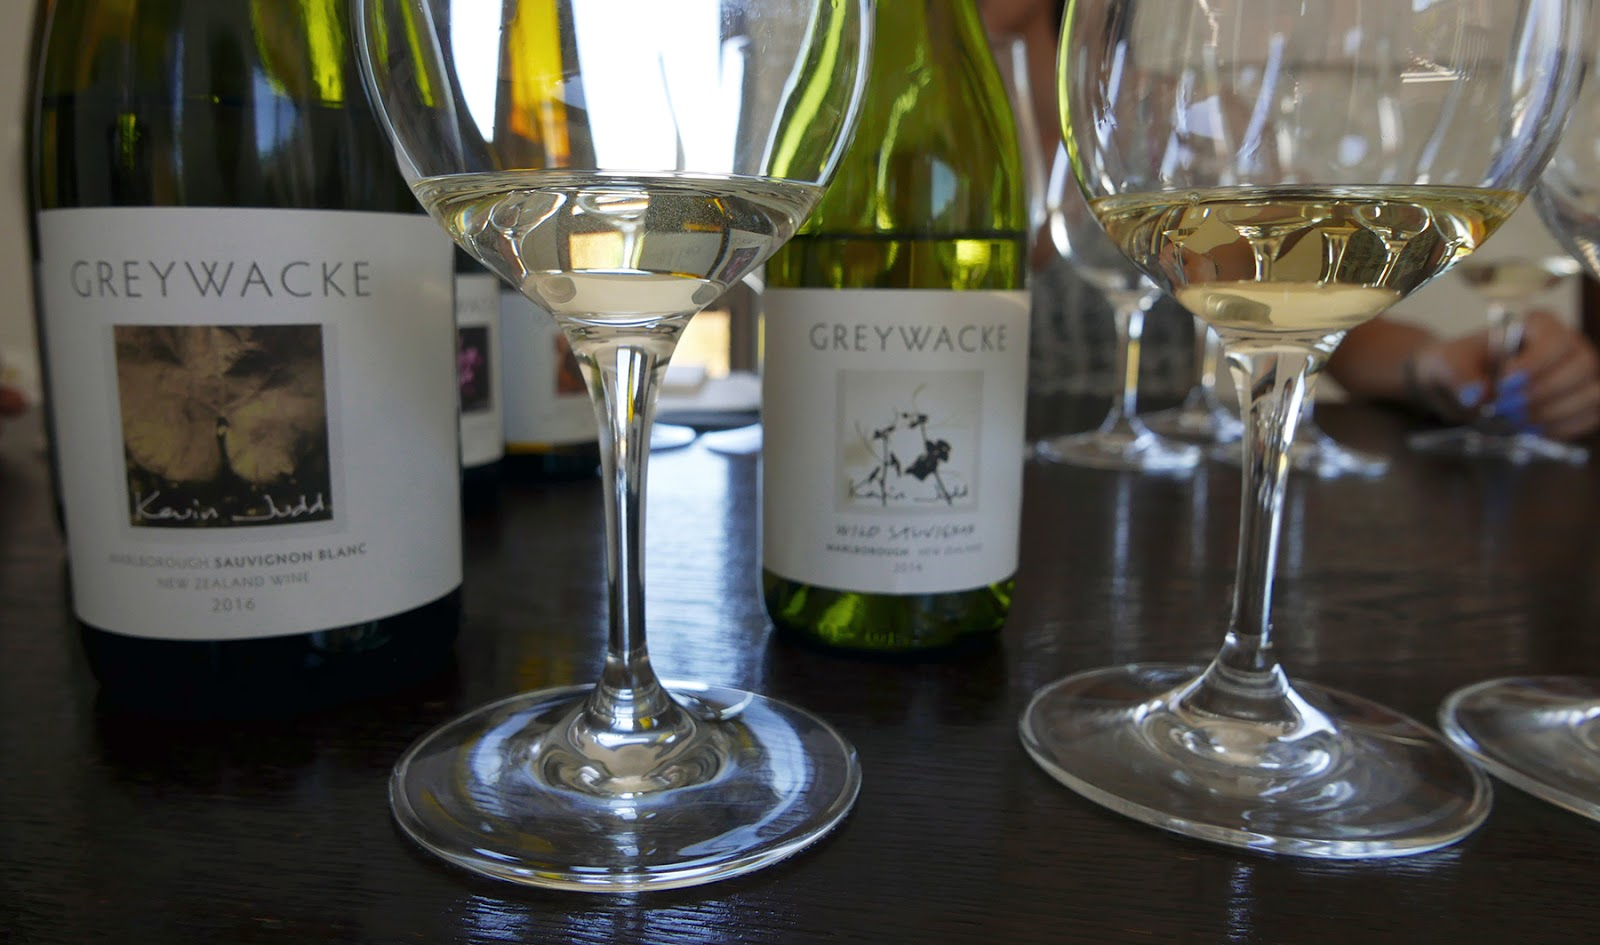 Euriental | luxury travel & style | Greywacke, Marlborough, South Island, New Zealand